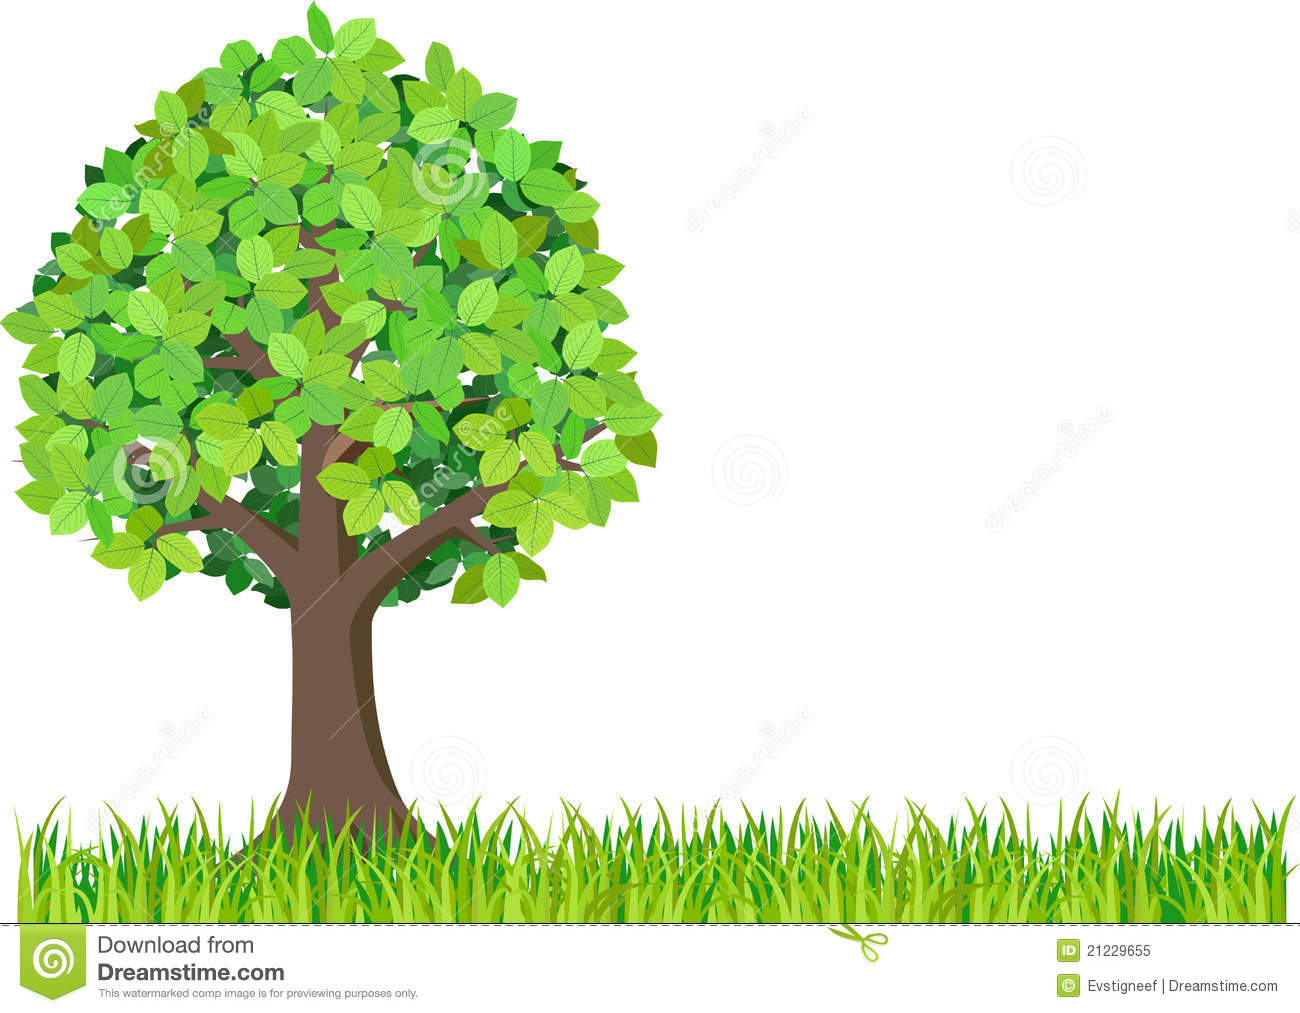 Tree with lawn clipart clip art royalty free download Tree with lawn clipart - ClipartFest clip art royalty free download